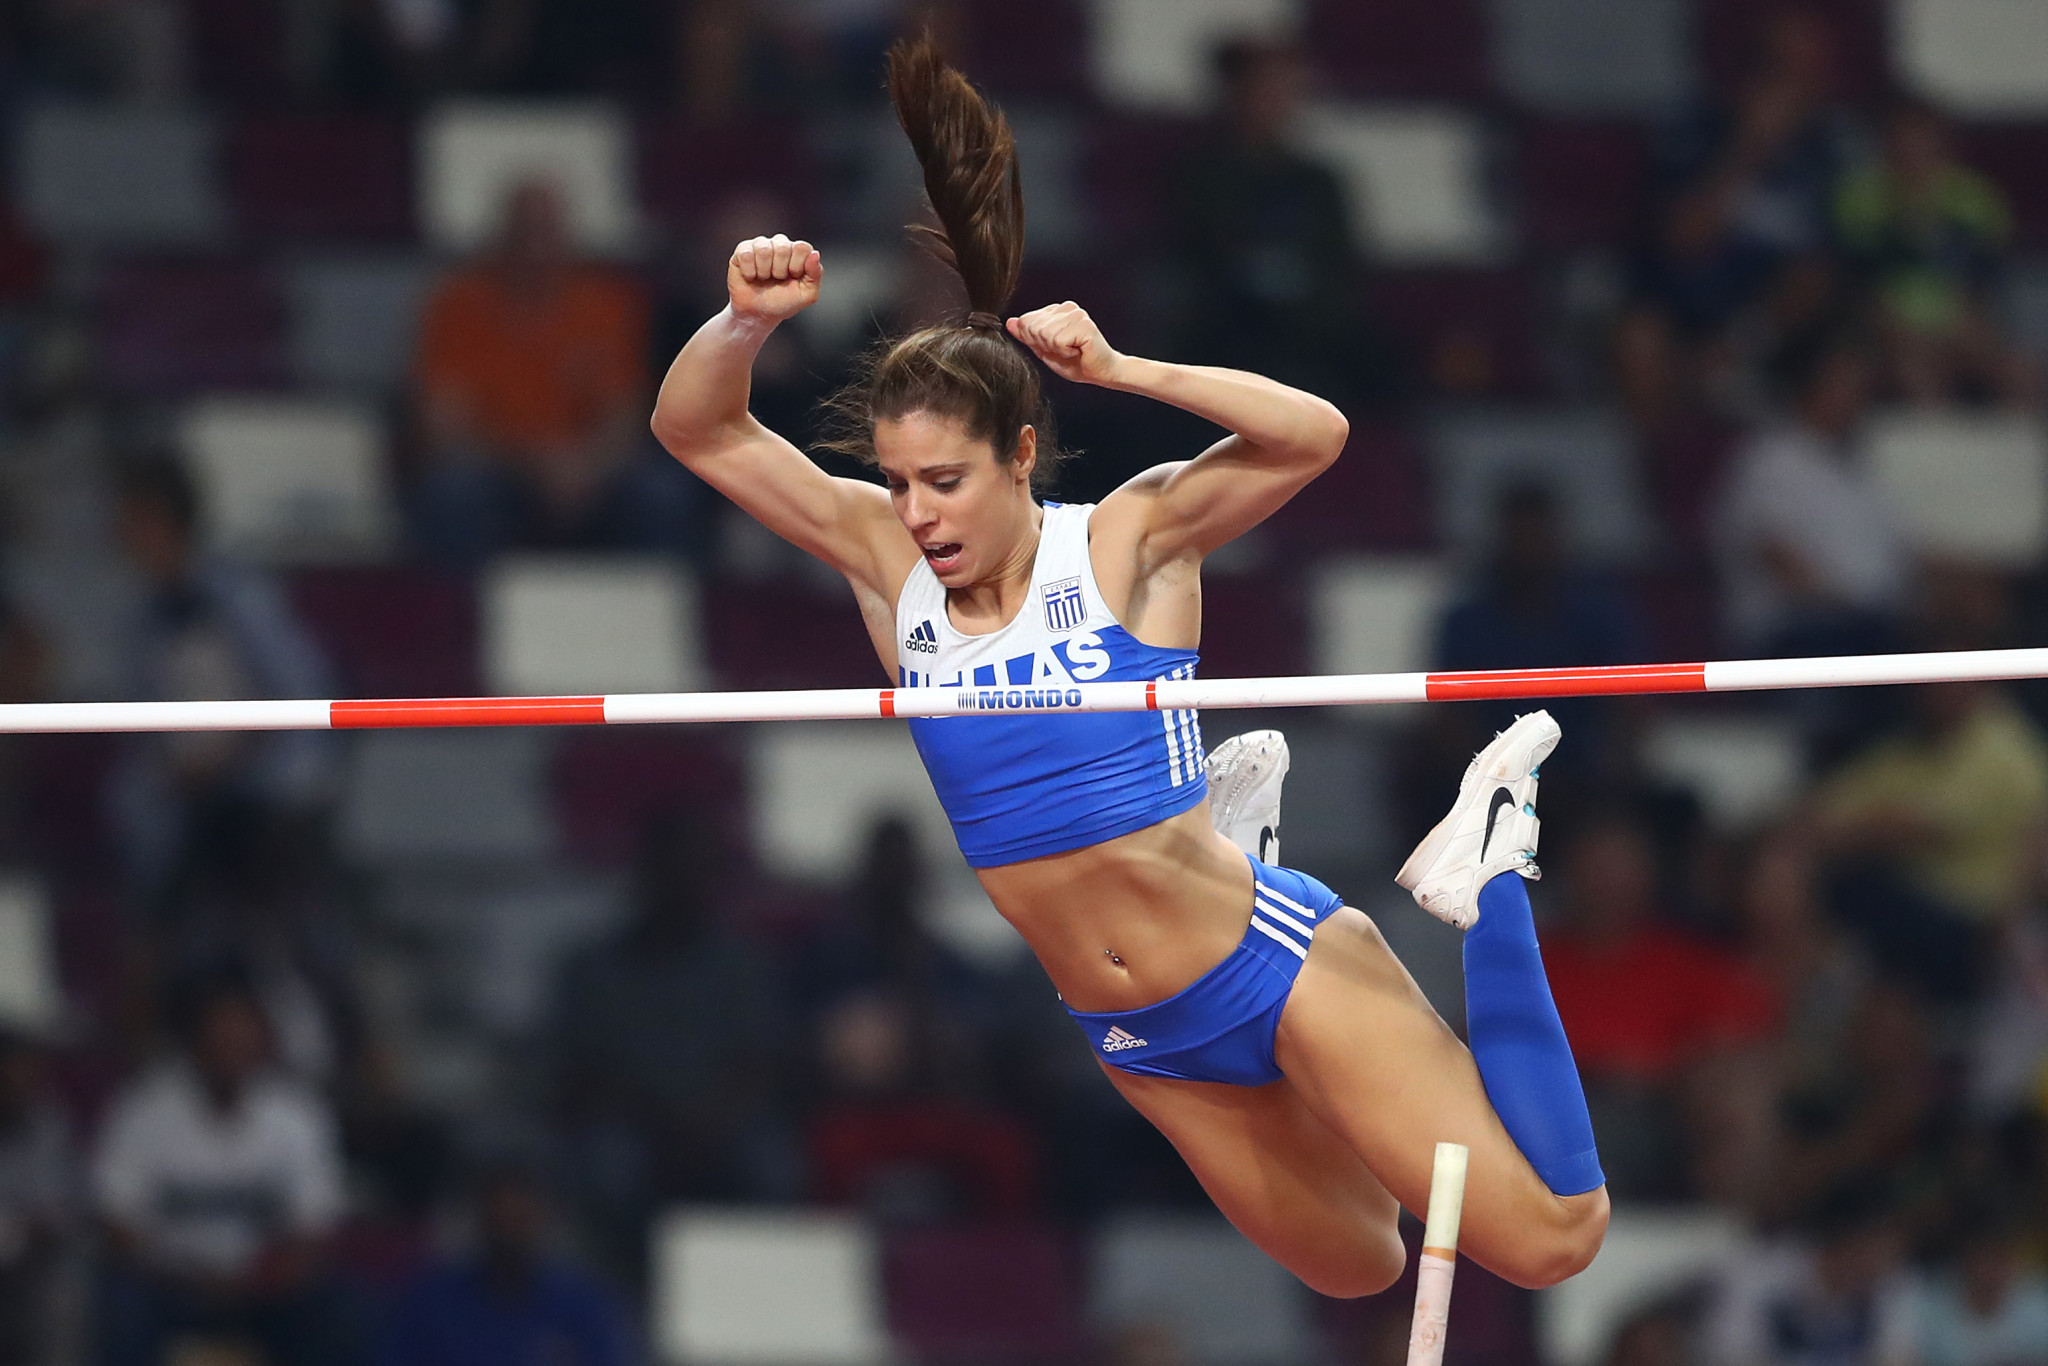 Greek pole vaulter Katerina Stefanidi is among those seeking election to the IOC Athletes' Commission at Tokyo 2020 ©Getty Images